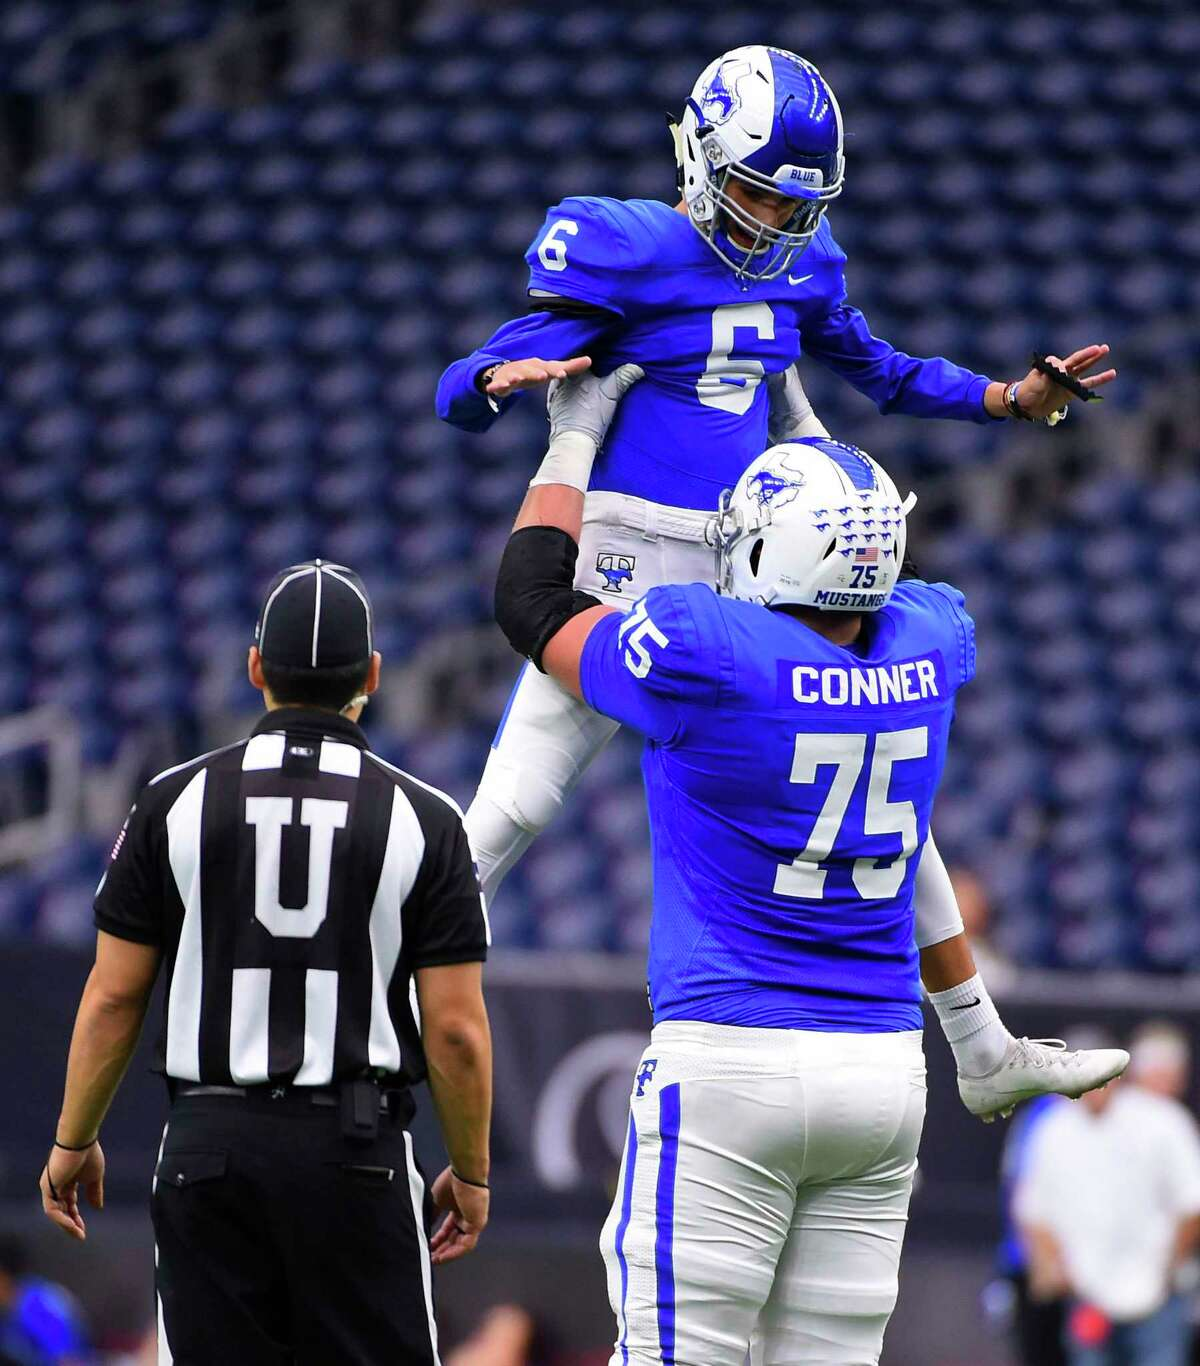 Katy Taylor kicker Renan Baeta (6) celebrates his field goal with offensive lineman Hayden Conner during the first half of a 6A division II regional final high school football game against Cy Creek, Dec. 7, 2019, in Houston.